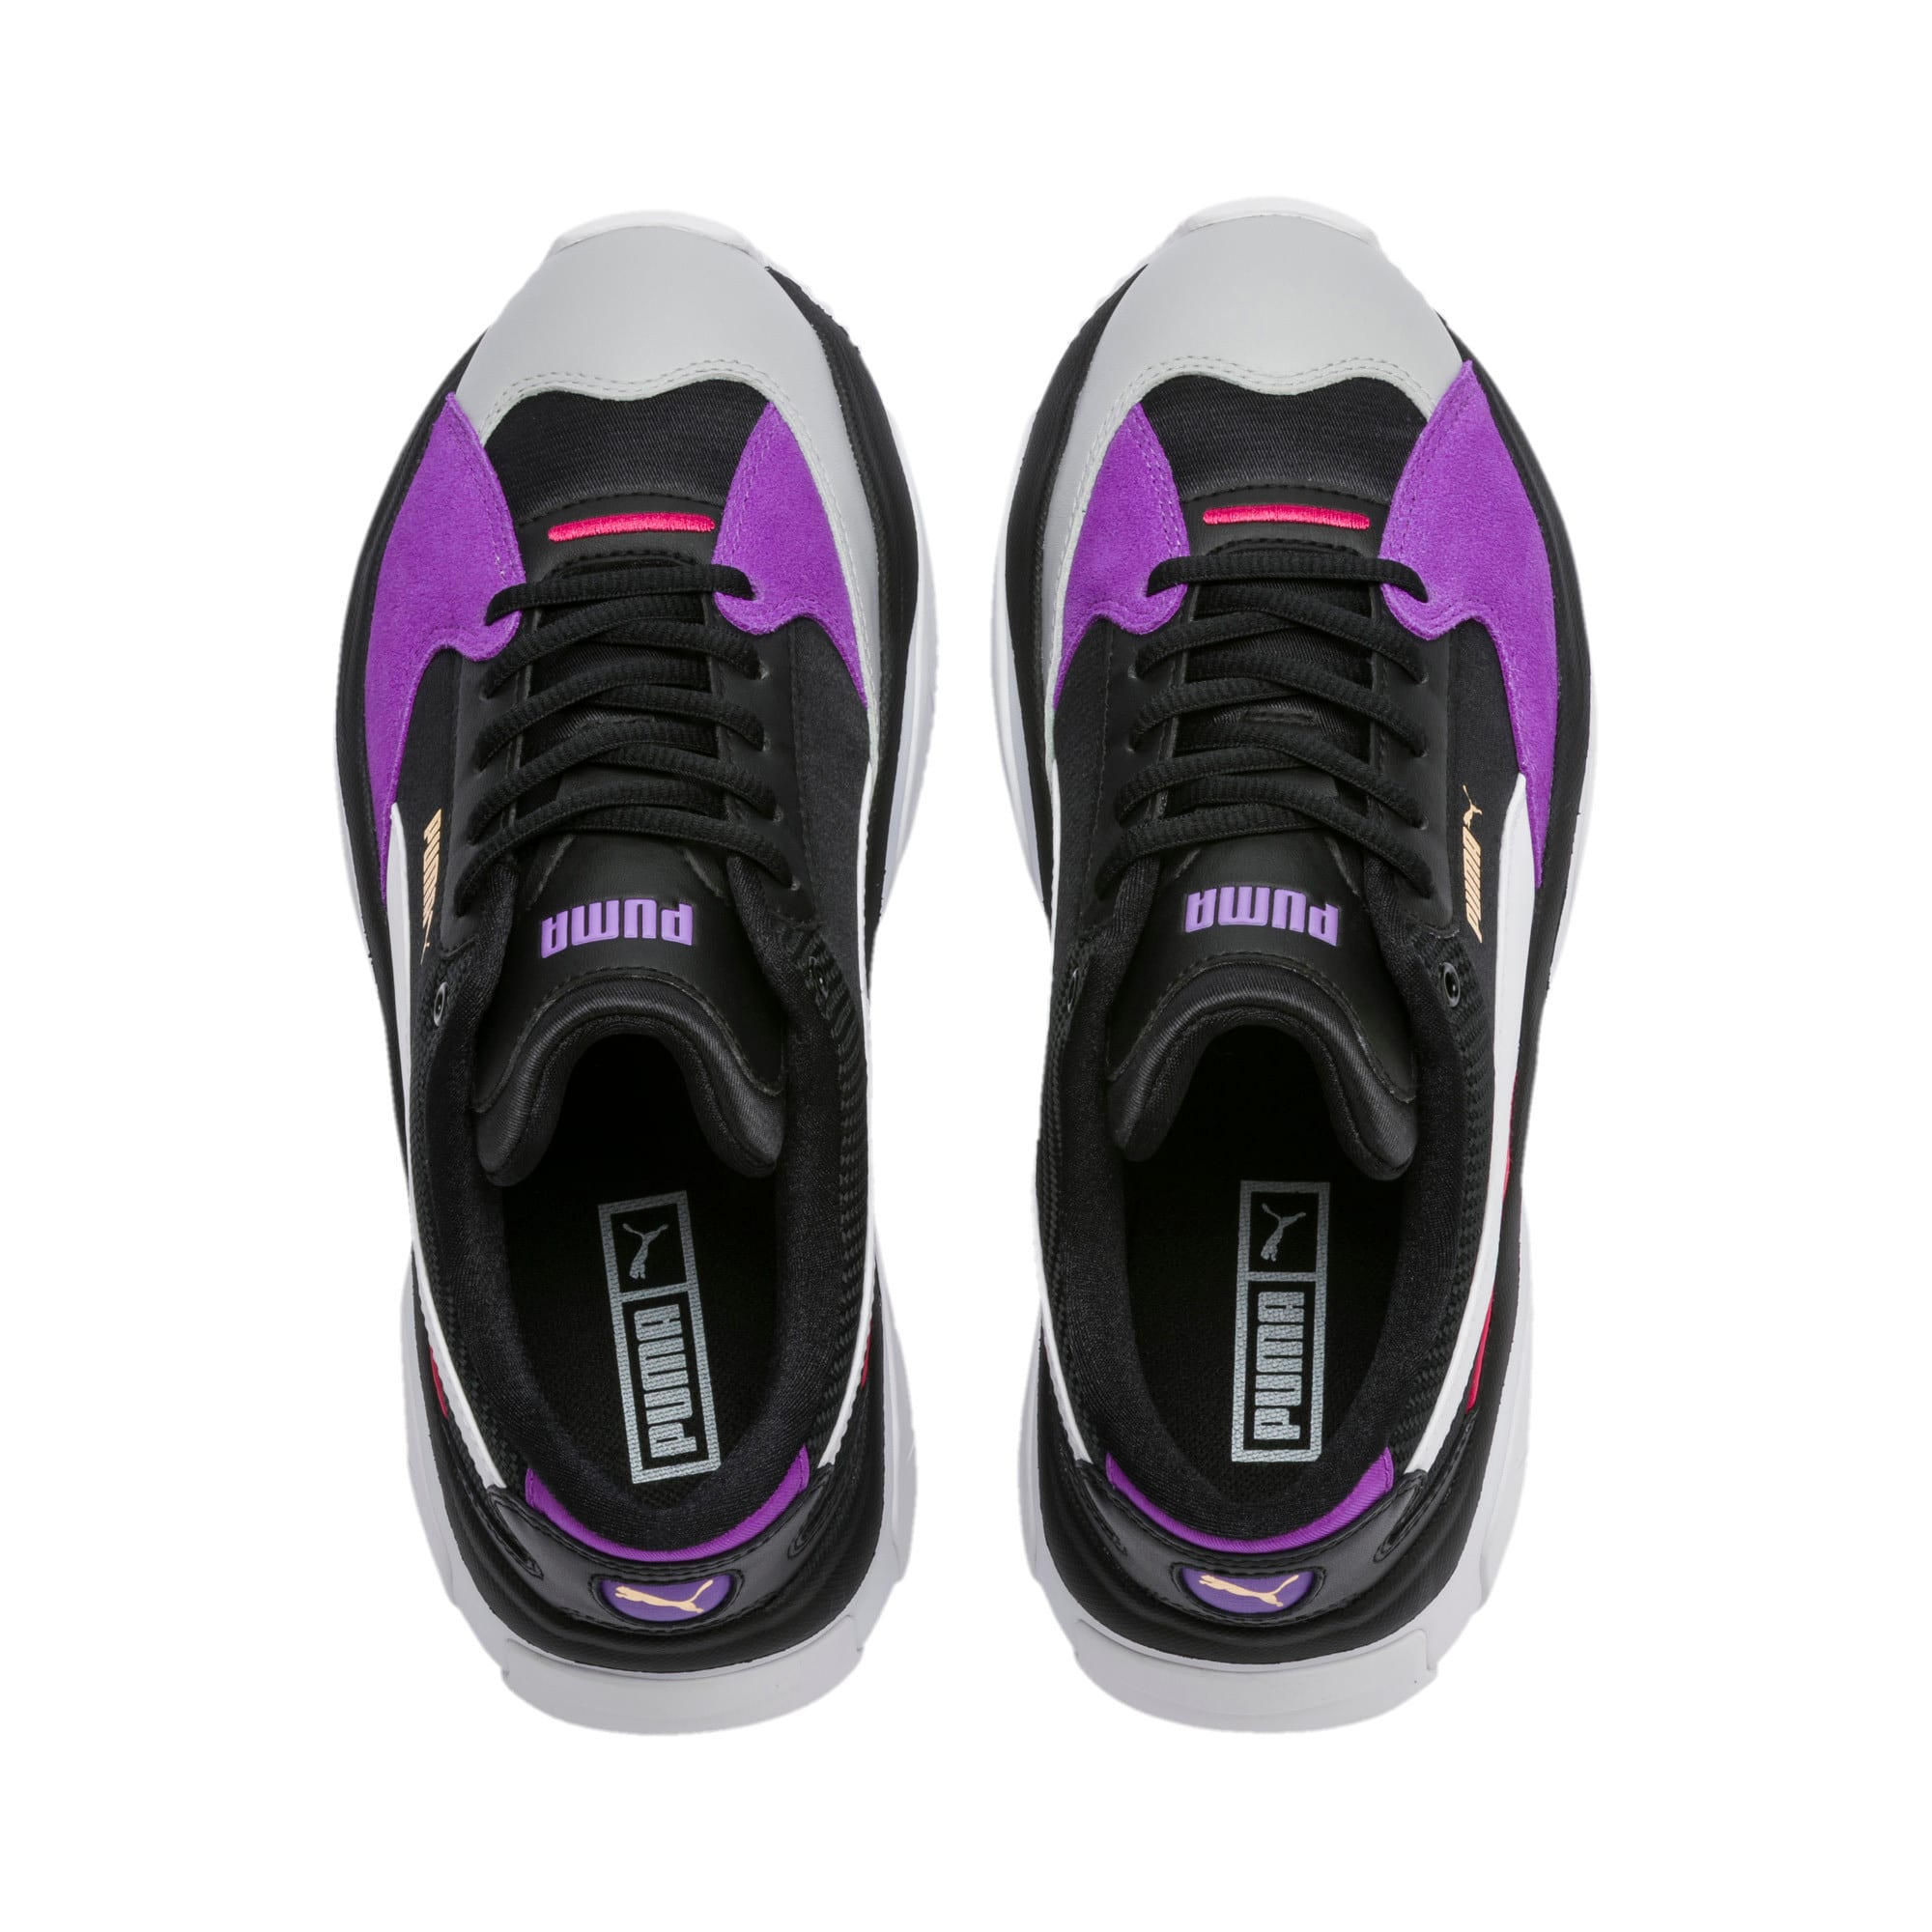 Thumbnail 7 of STORM.Y Damen Sneaker, Puma Black-Gray Violet, medium